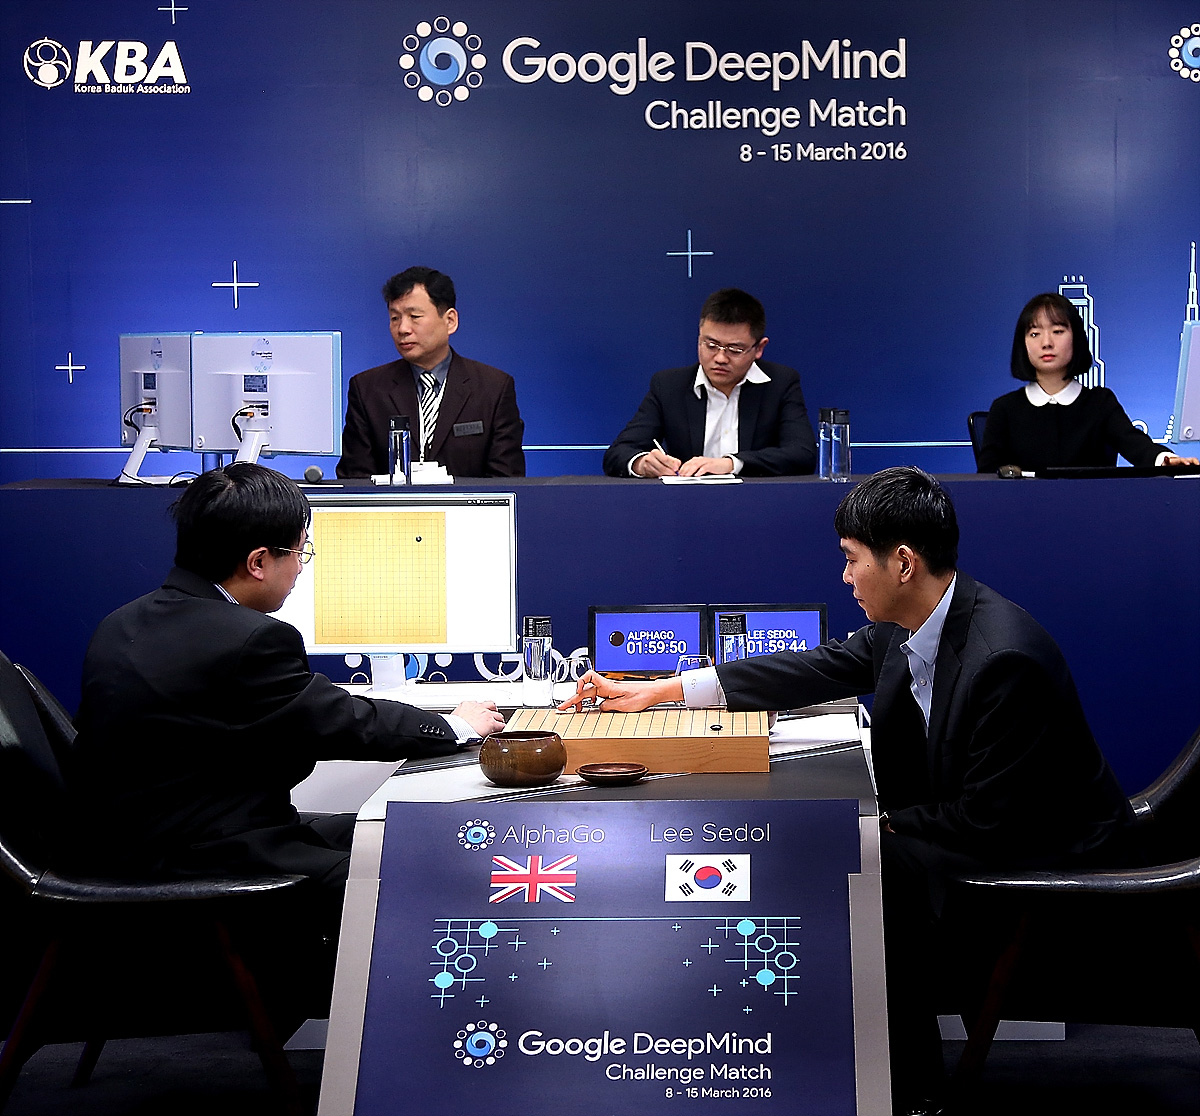 South Korean professional Go player Lee Se-dol competes against Google's AlphaGo on March 10, 2016 in Seoul, South Korea. Lee Se-dol played a five-game match against a computer program developed by a Google, AlphaGo.